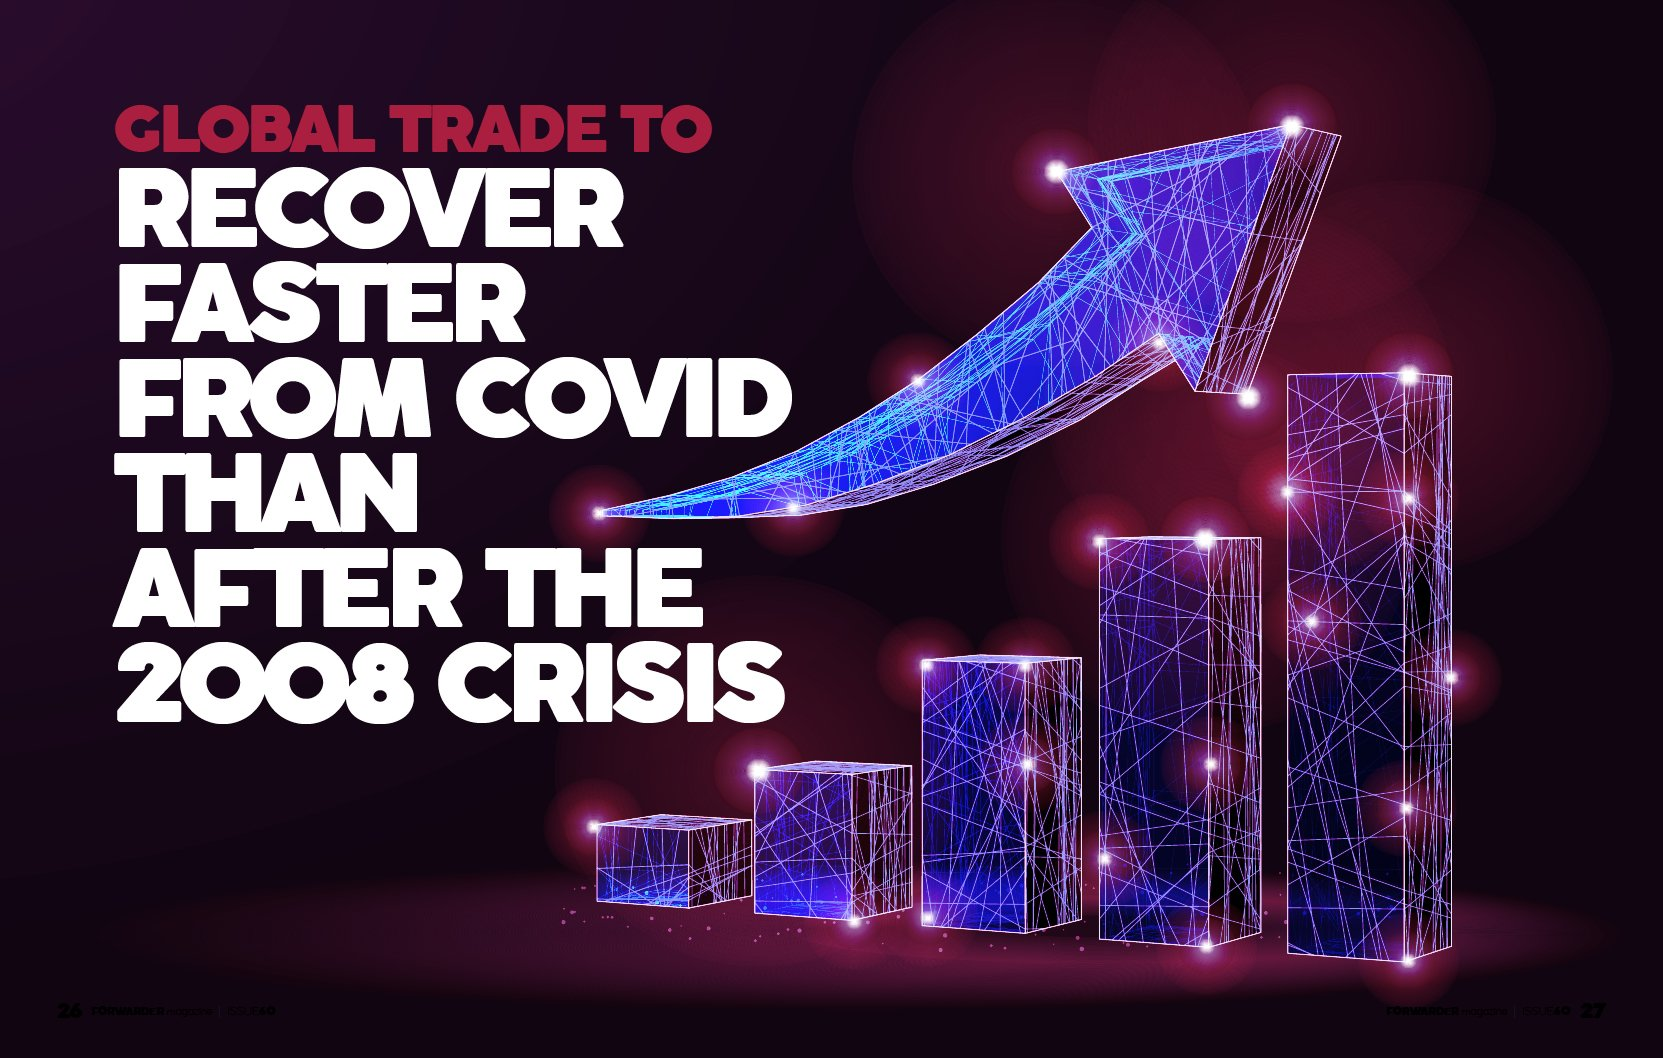 GLOBAL TRADE TO RECOVER FASTER FROM COVID THAN AFTER THE 2008 CRISIS.jpg